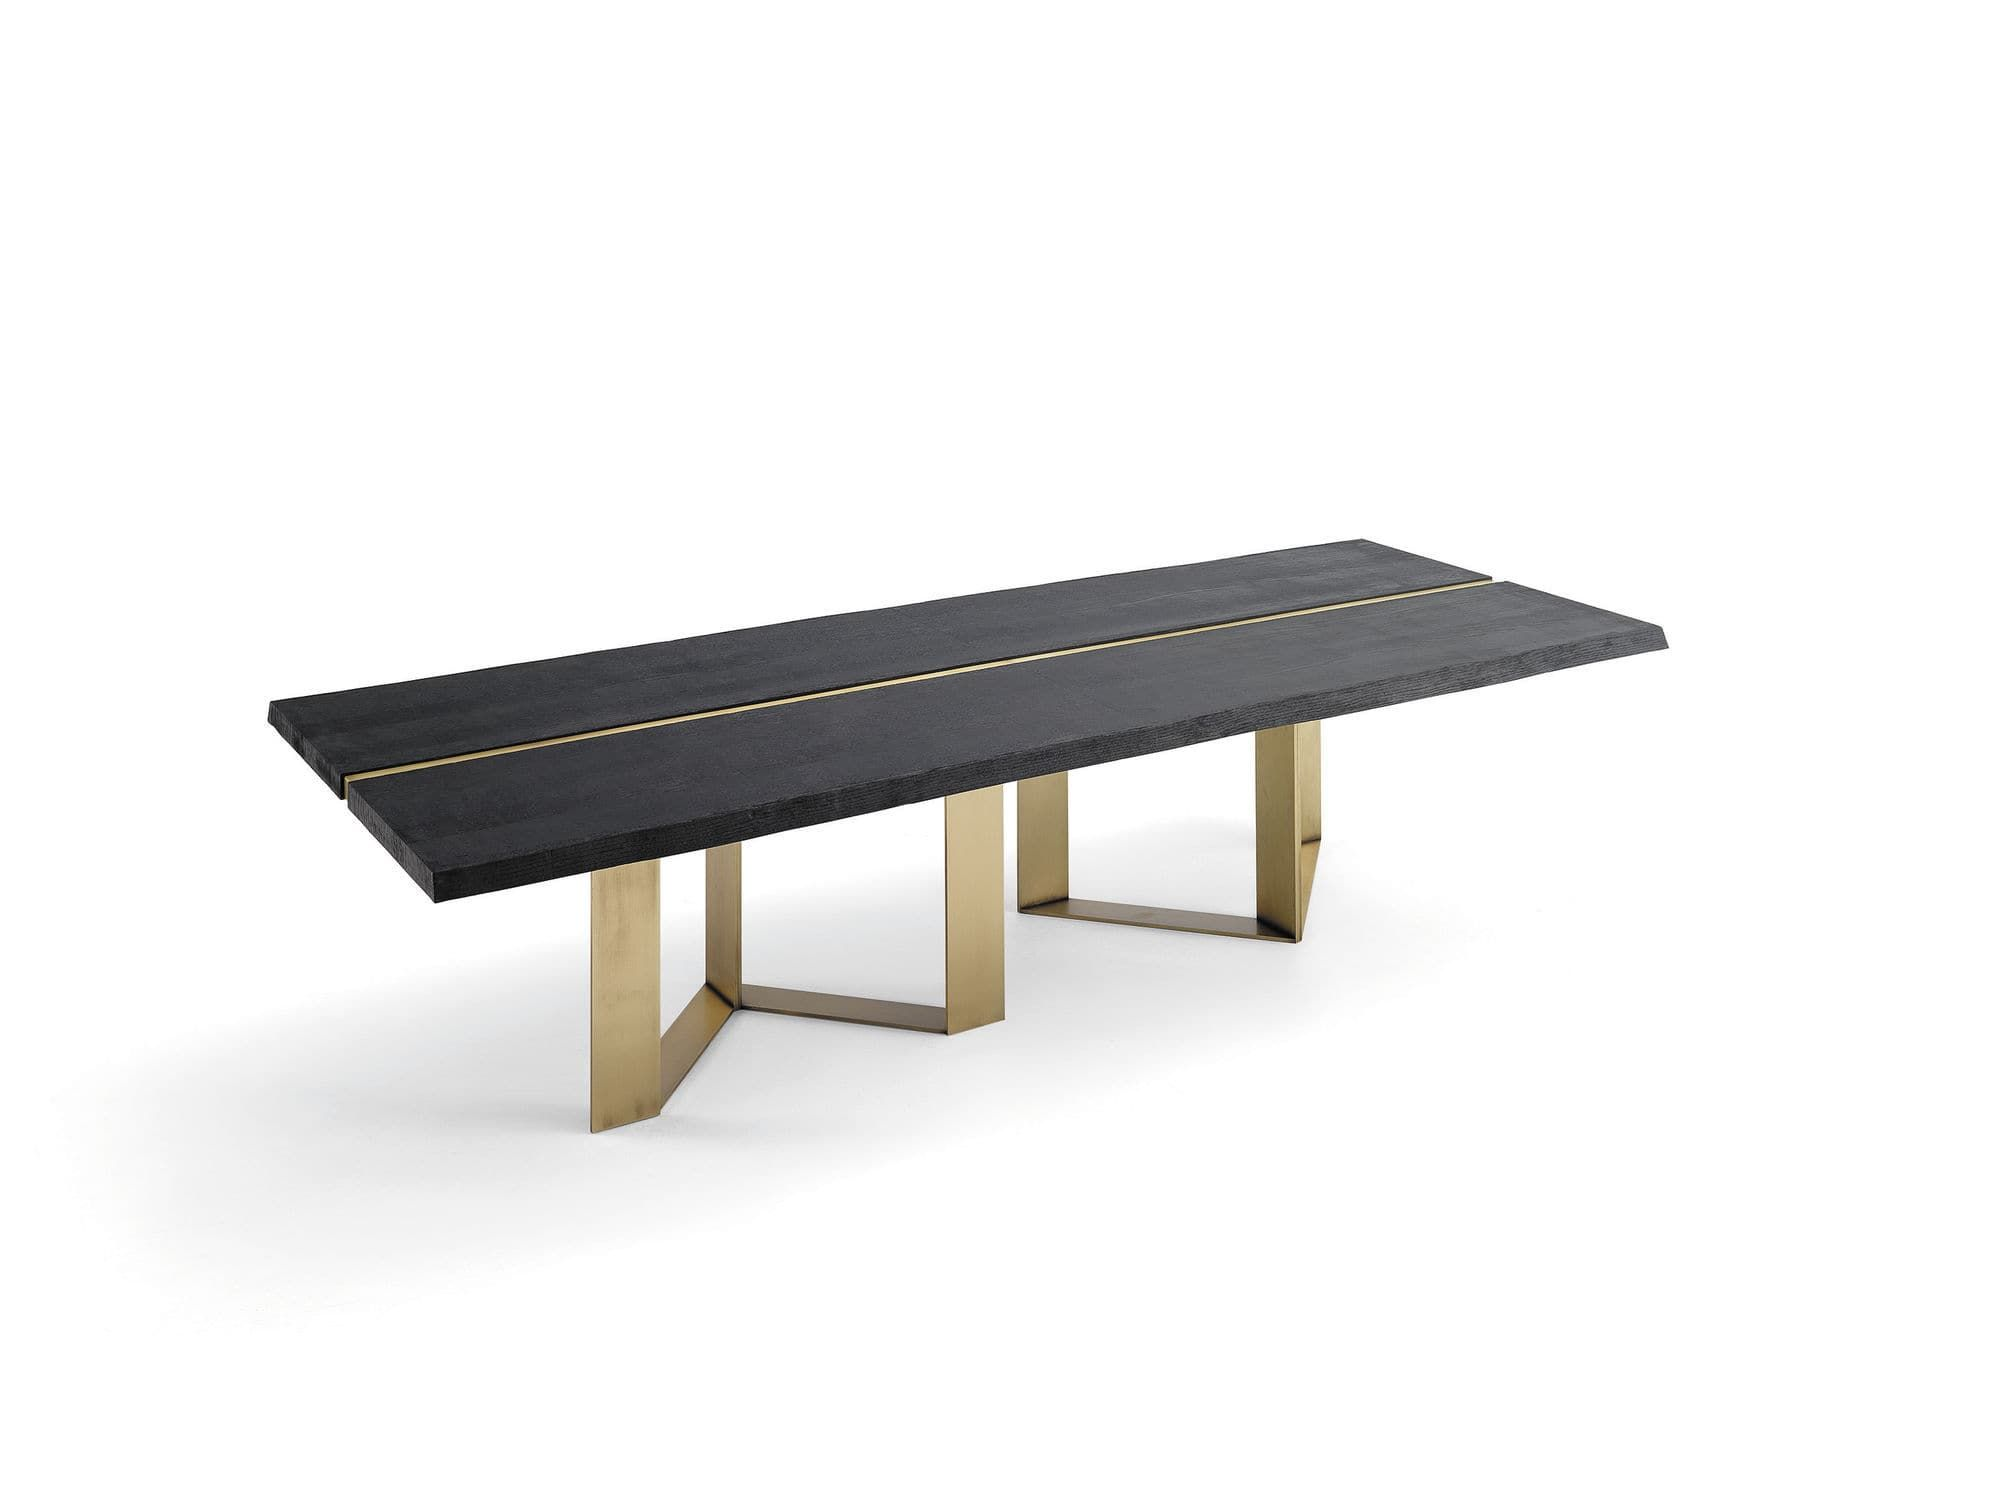 Dining table original design oak brass astor interi for Astor dining table